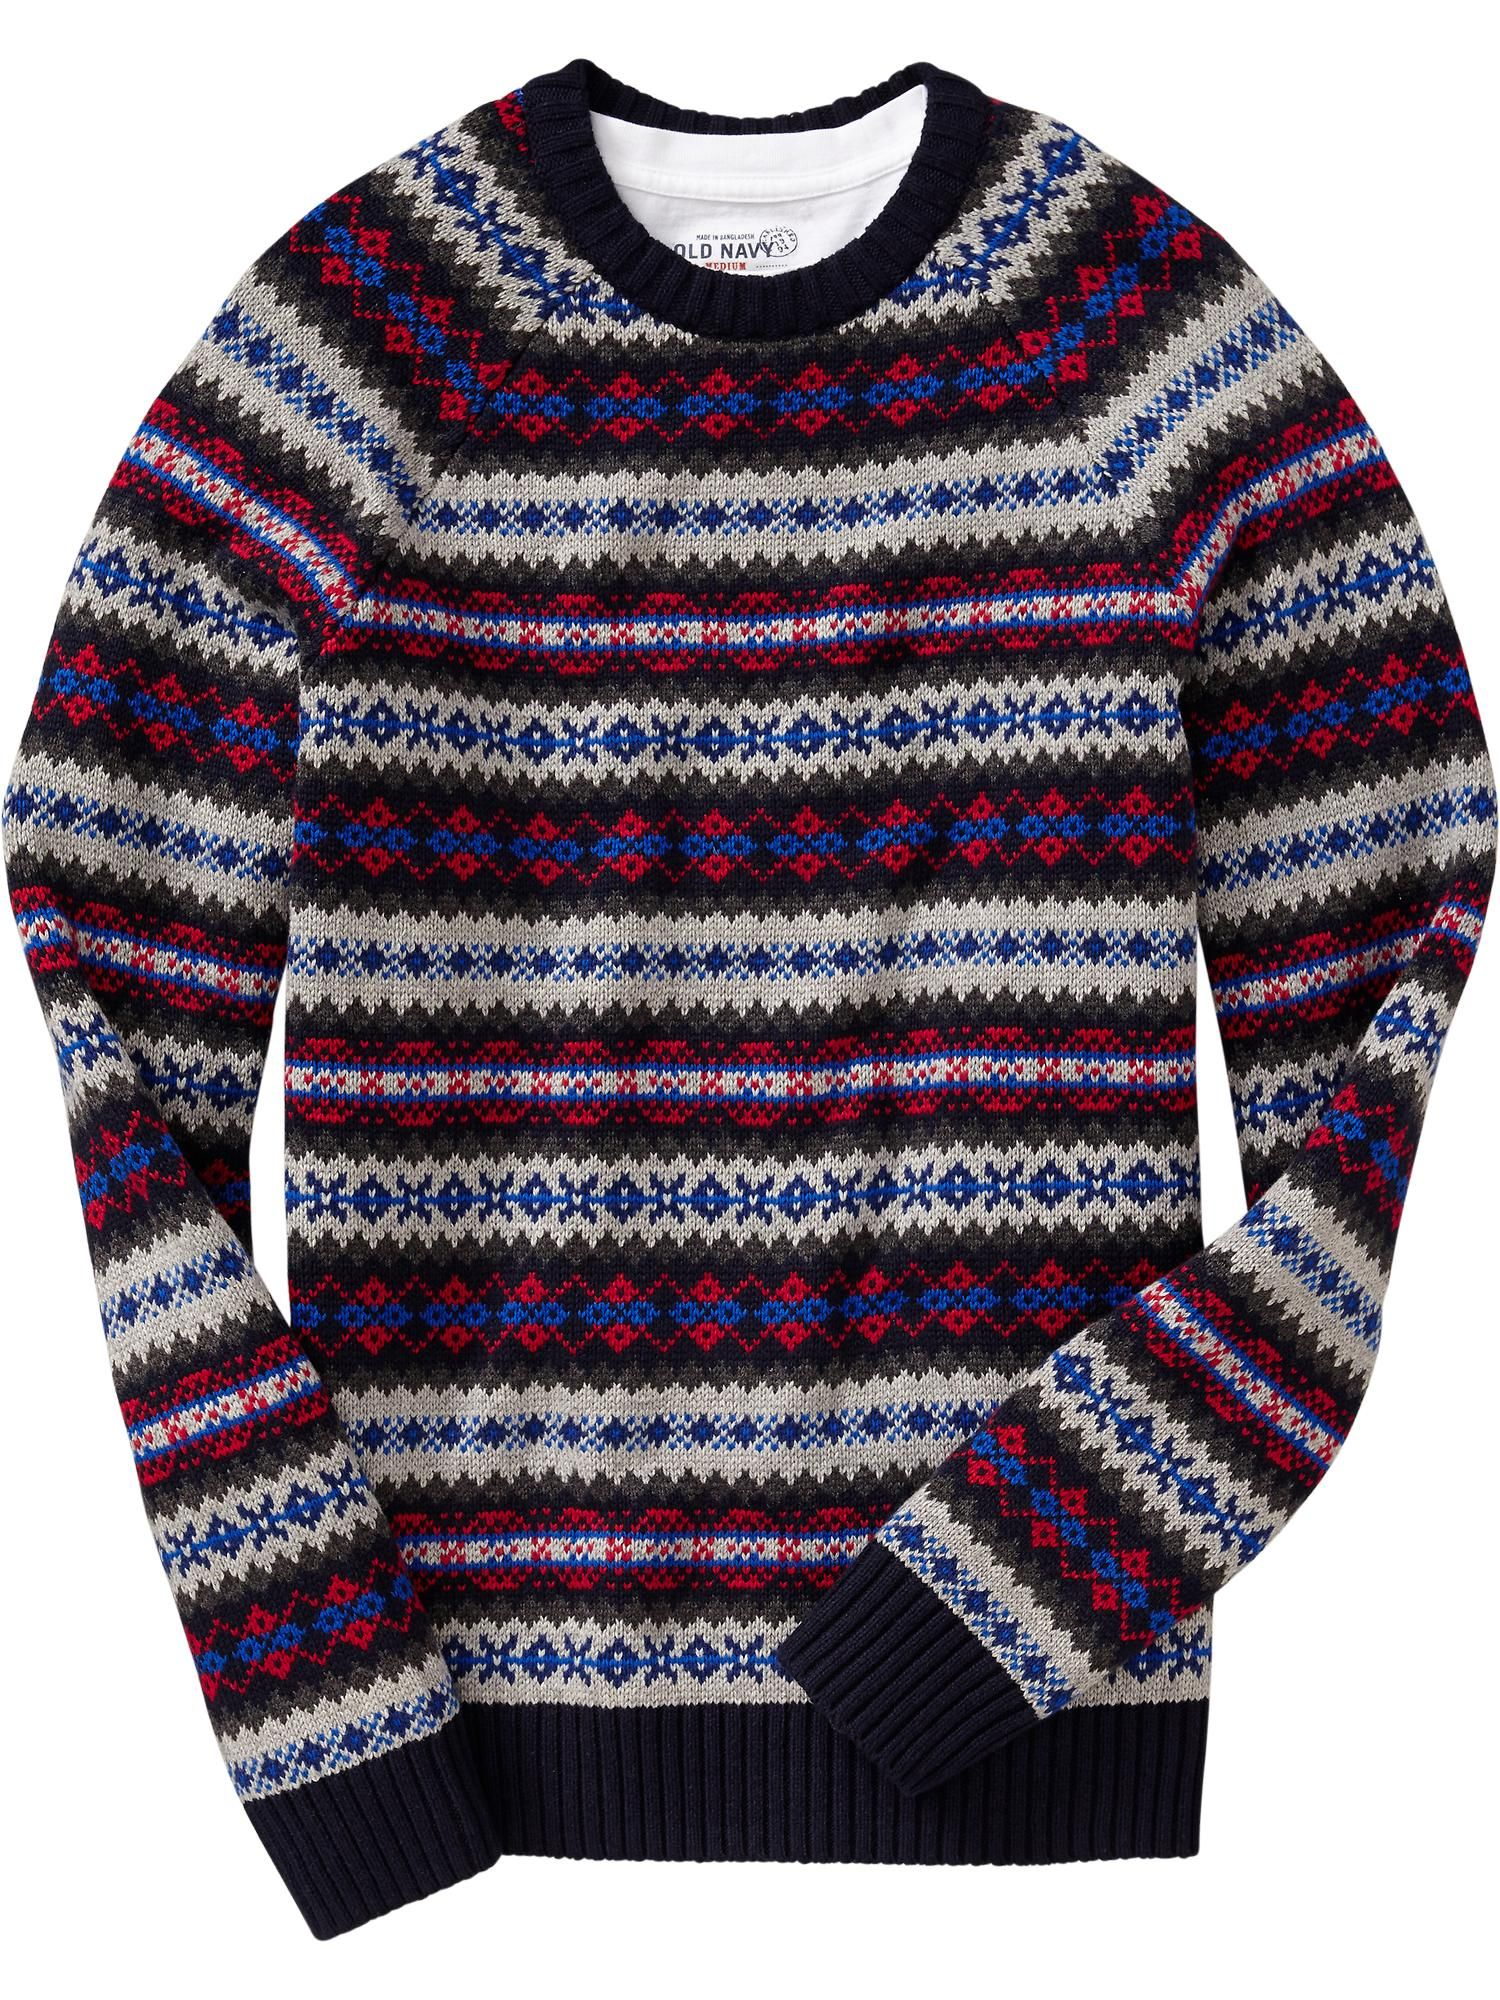 Collection Old Navy Christmas Sweaters Pictures - Best Fashion ...